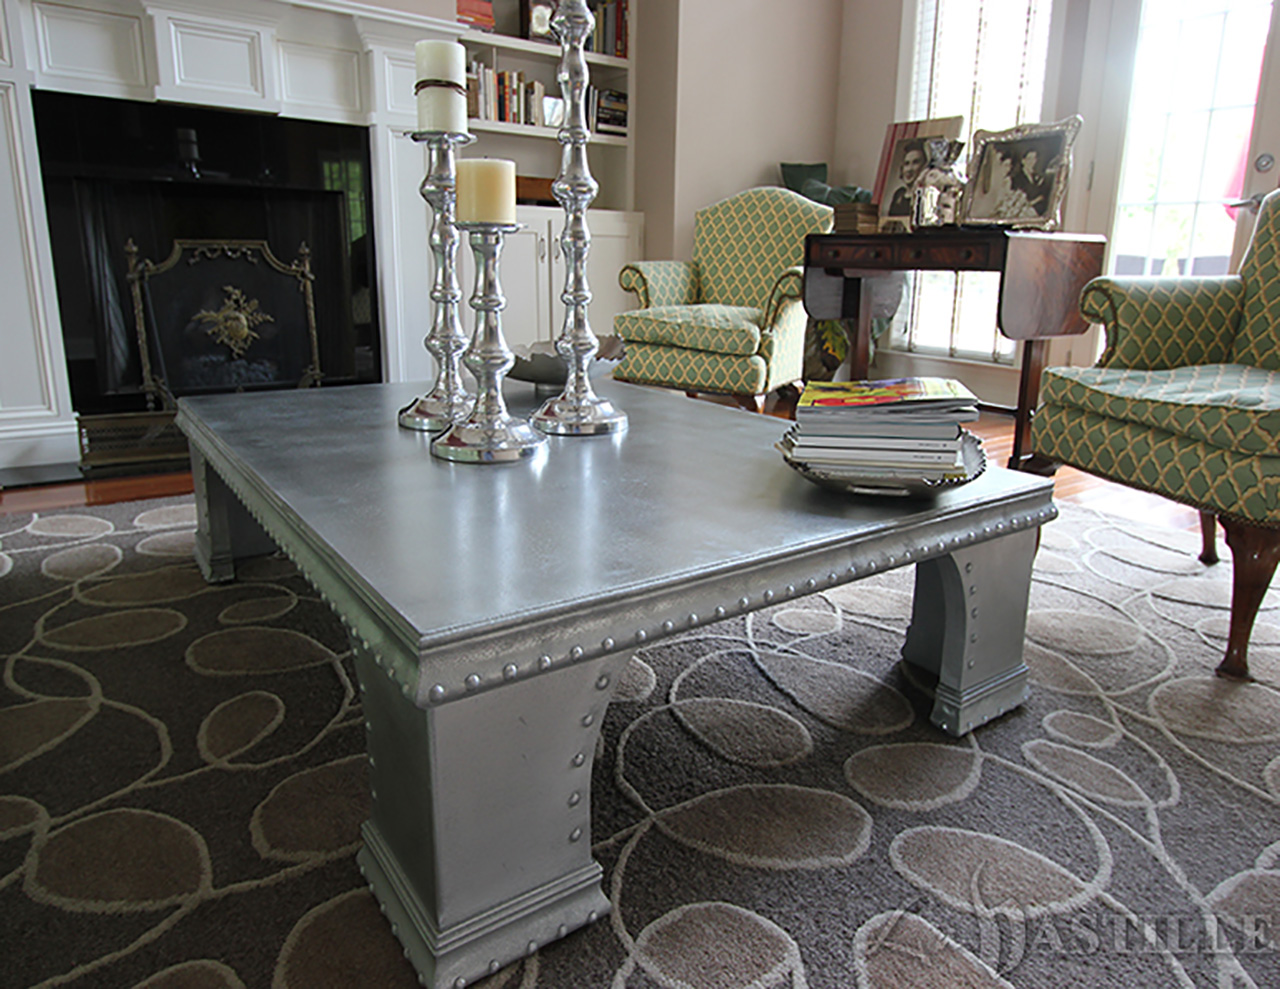 Cast Zinc Statement Coffee Table - La Bastille